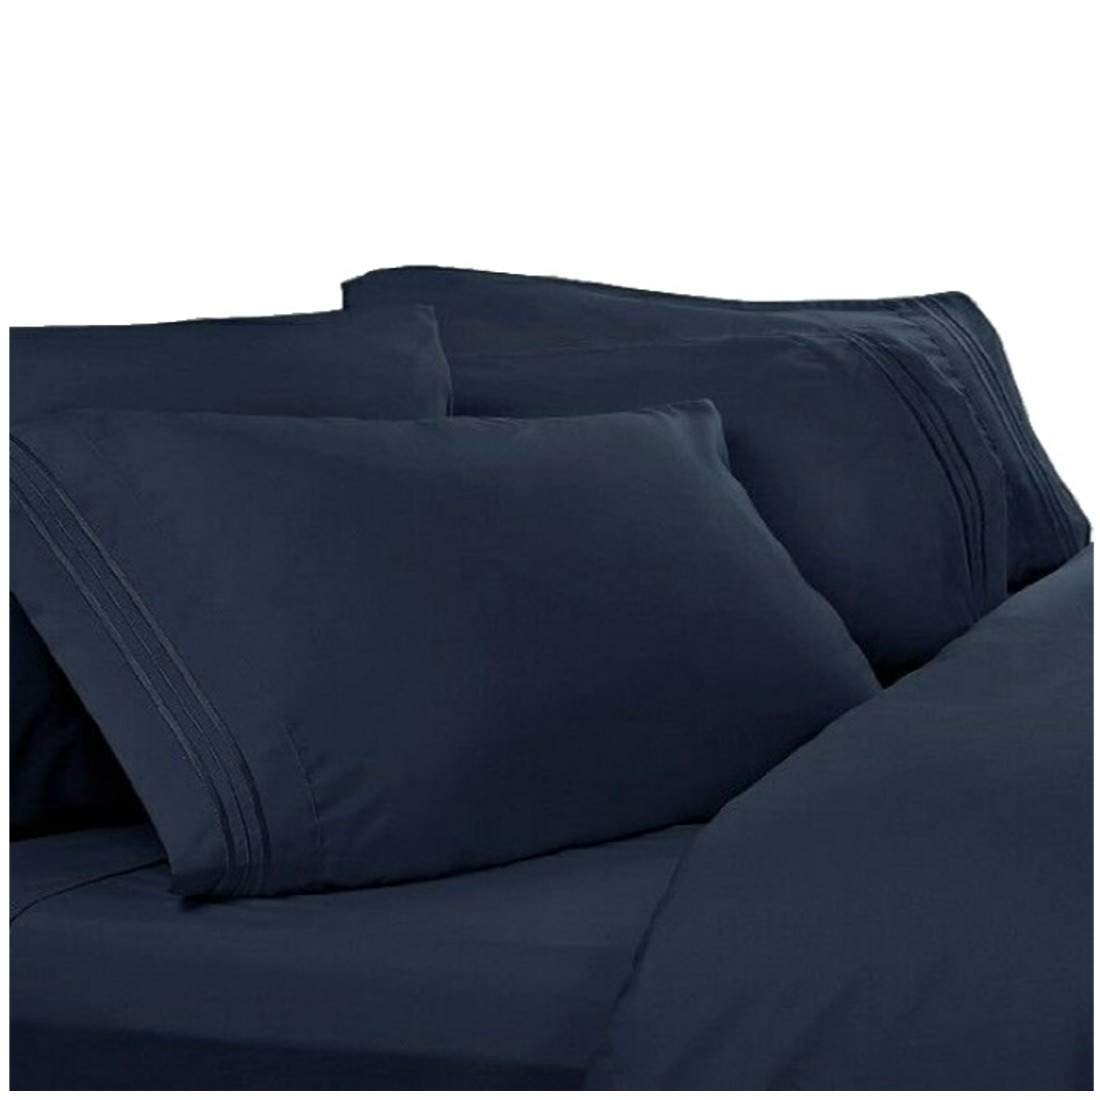 Get Quotations Split Cal King Sheets California Navy Blue 1800 Thread Count